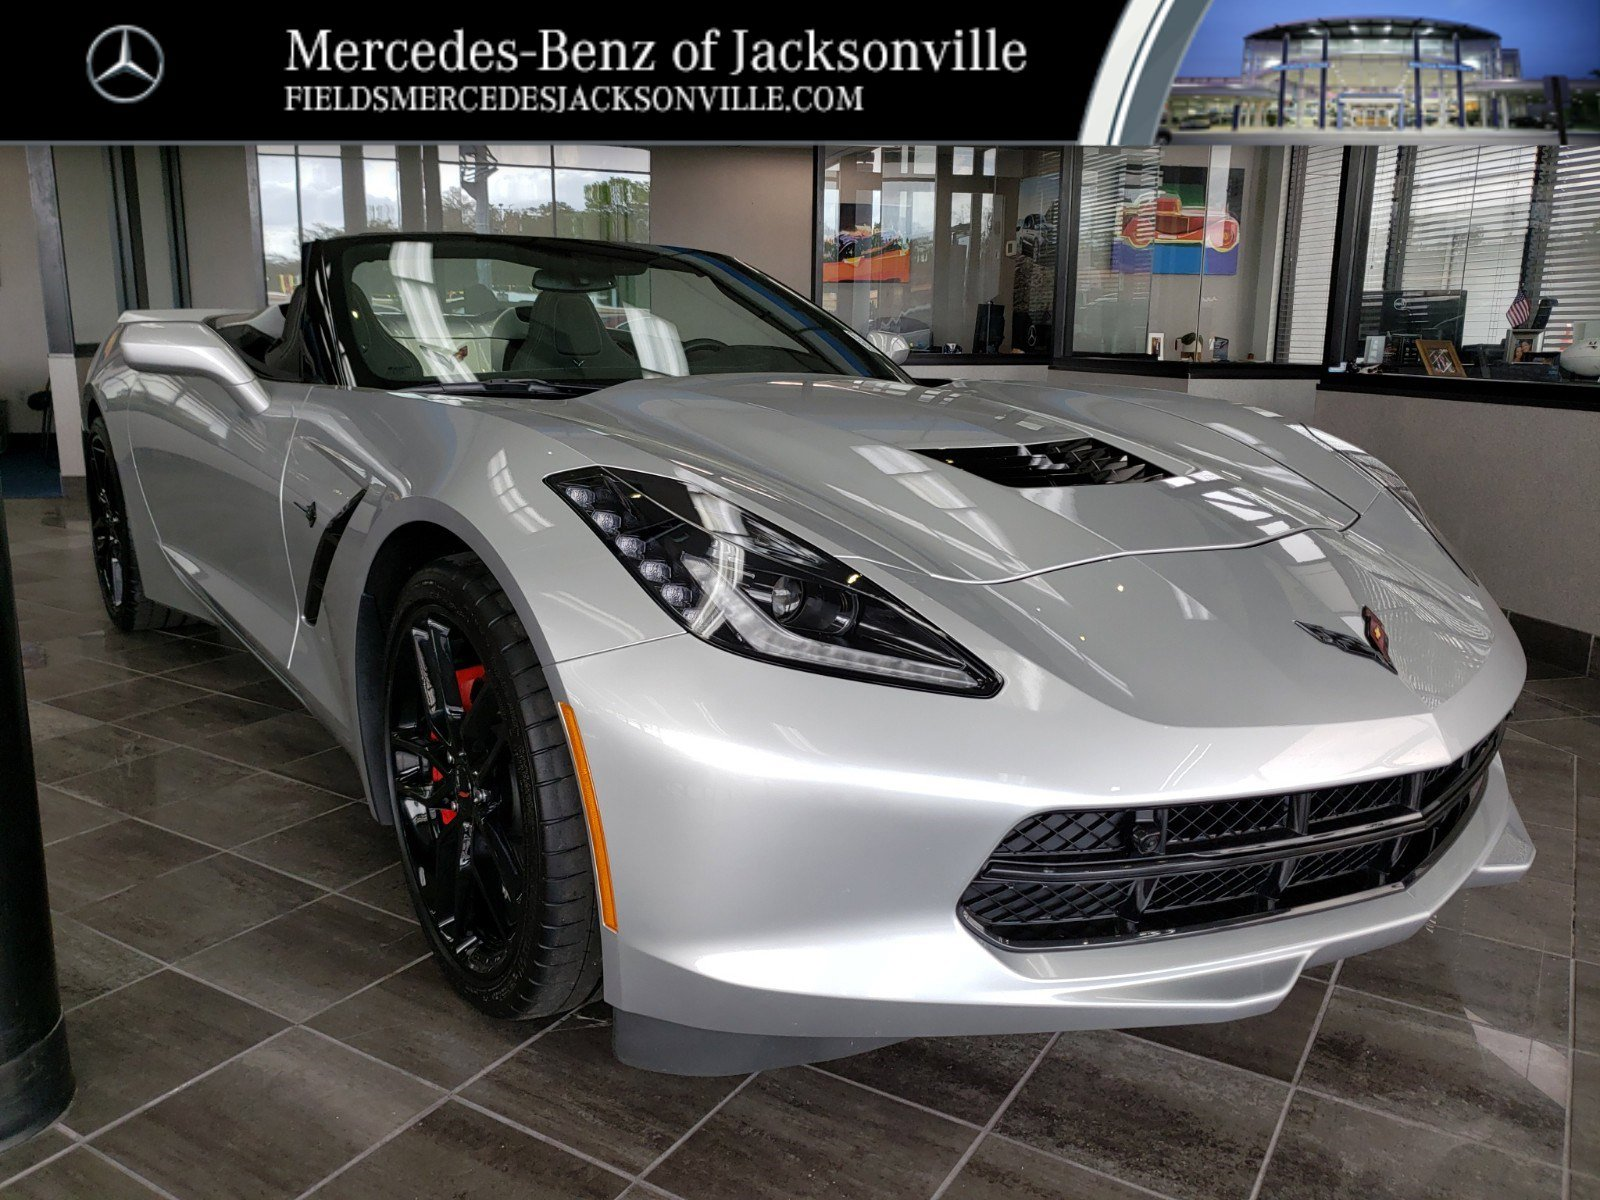 2017 Chevrolet Corvette Stingray Convertible w/ 2LT image